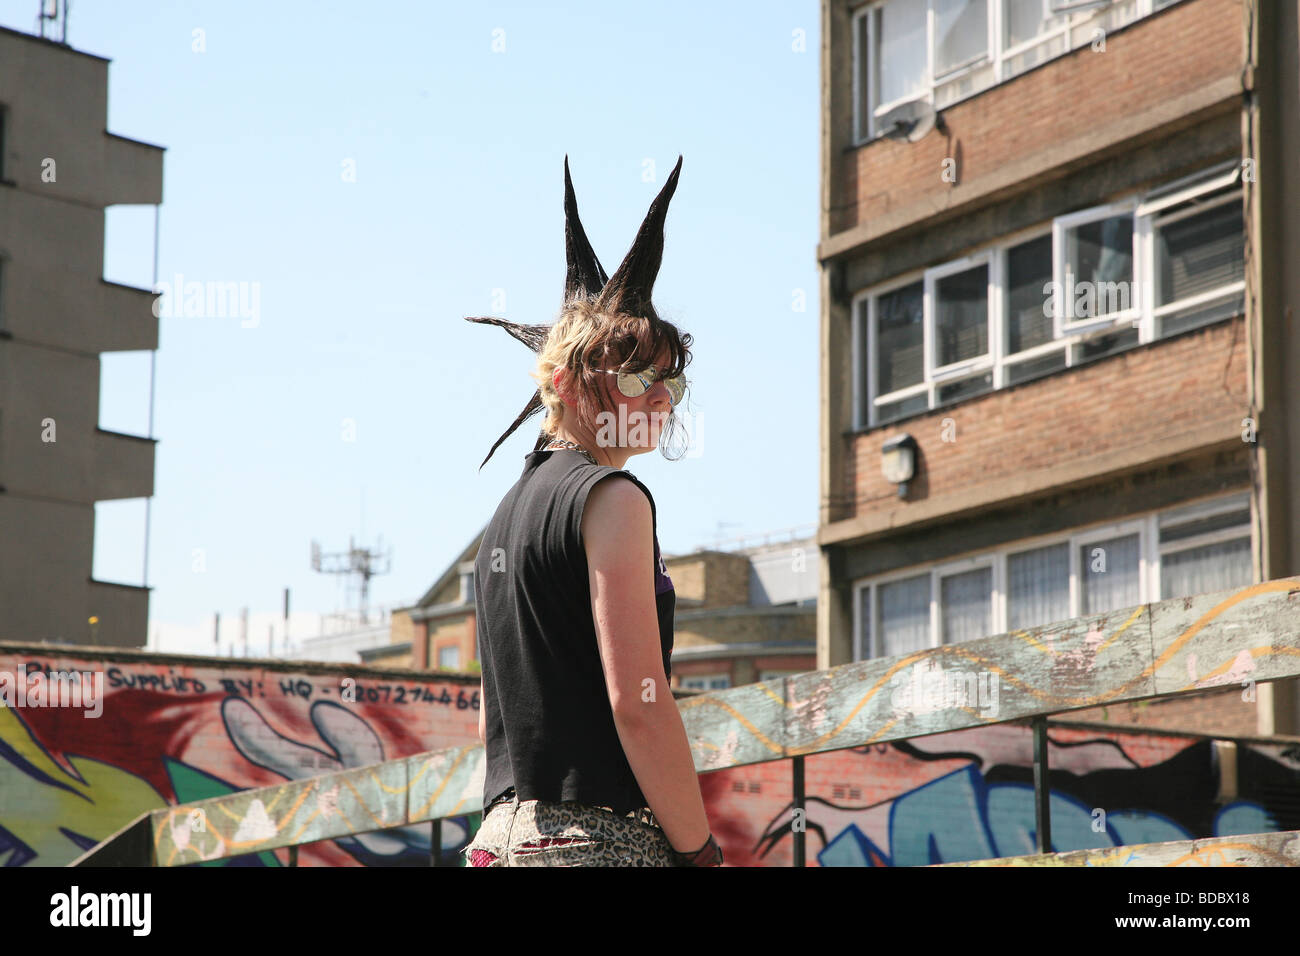 A punk girl 'Rae Ray Riots' with a large Mohican, Shoreditch, London, UK .2009 Stock Photo